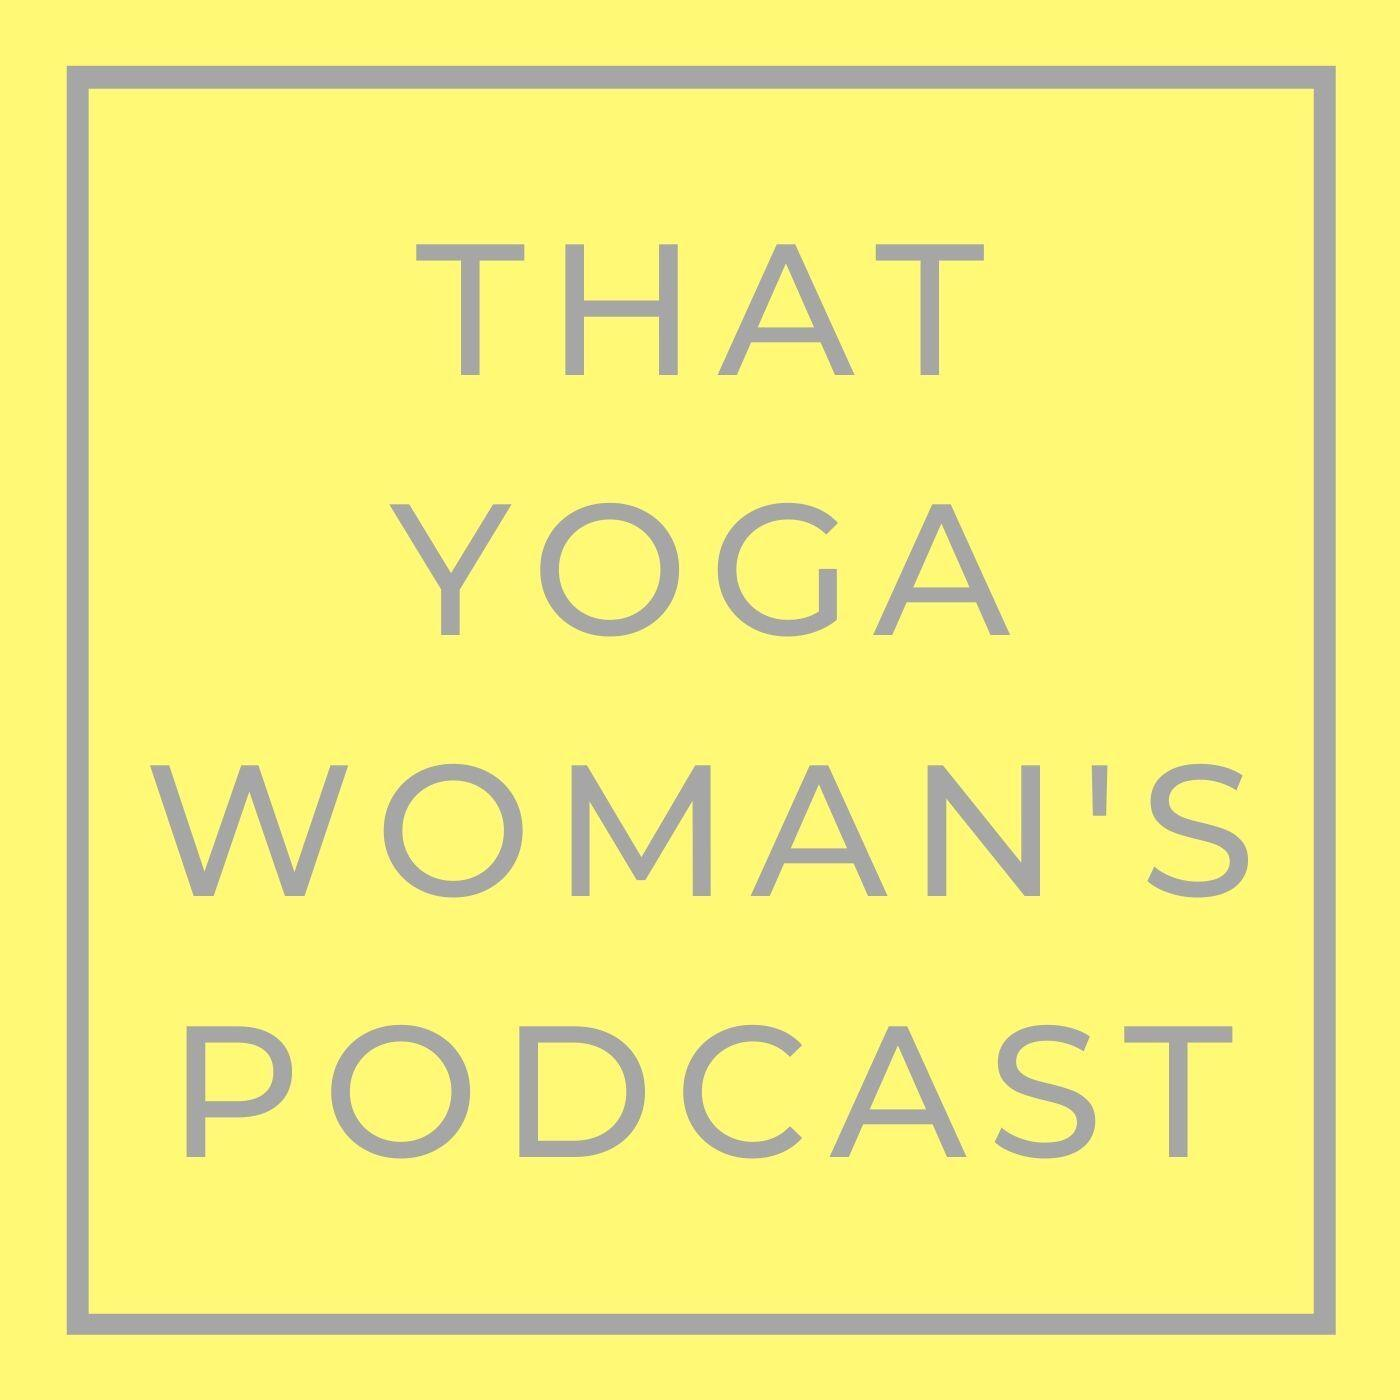 That Yoga Woman's Podcast